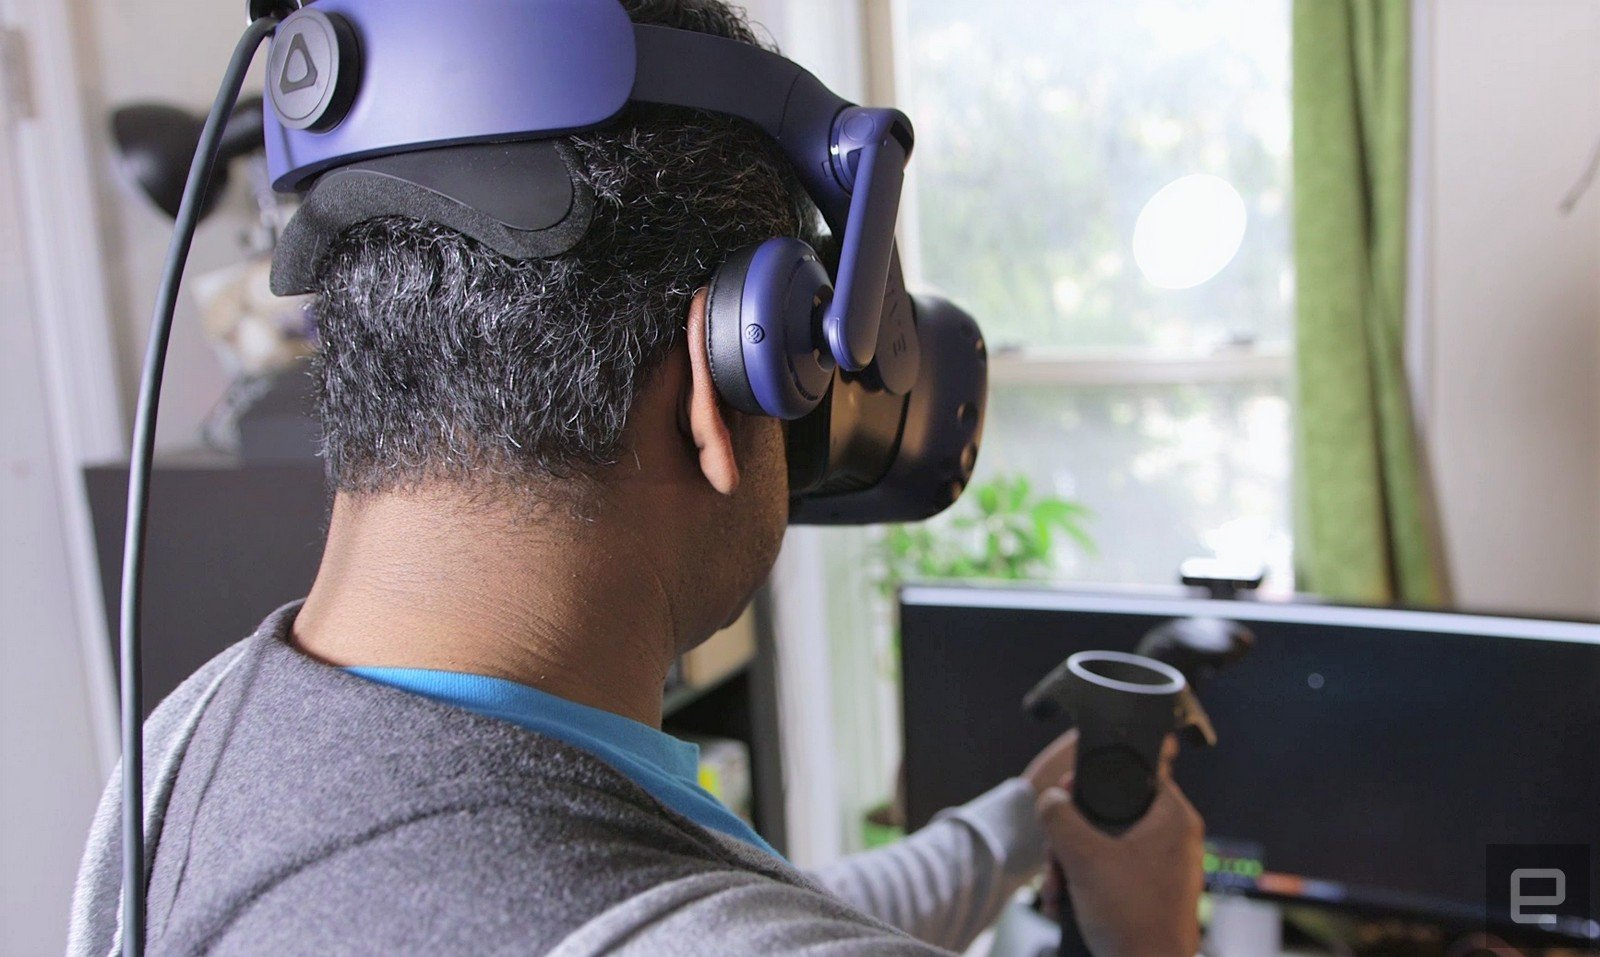 HTC Vive Pro starter kit hastily debuts (with one big annoyance)